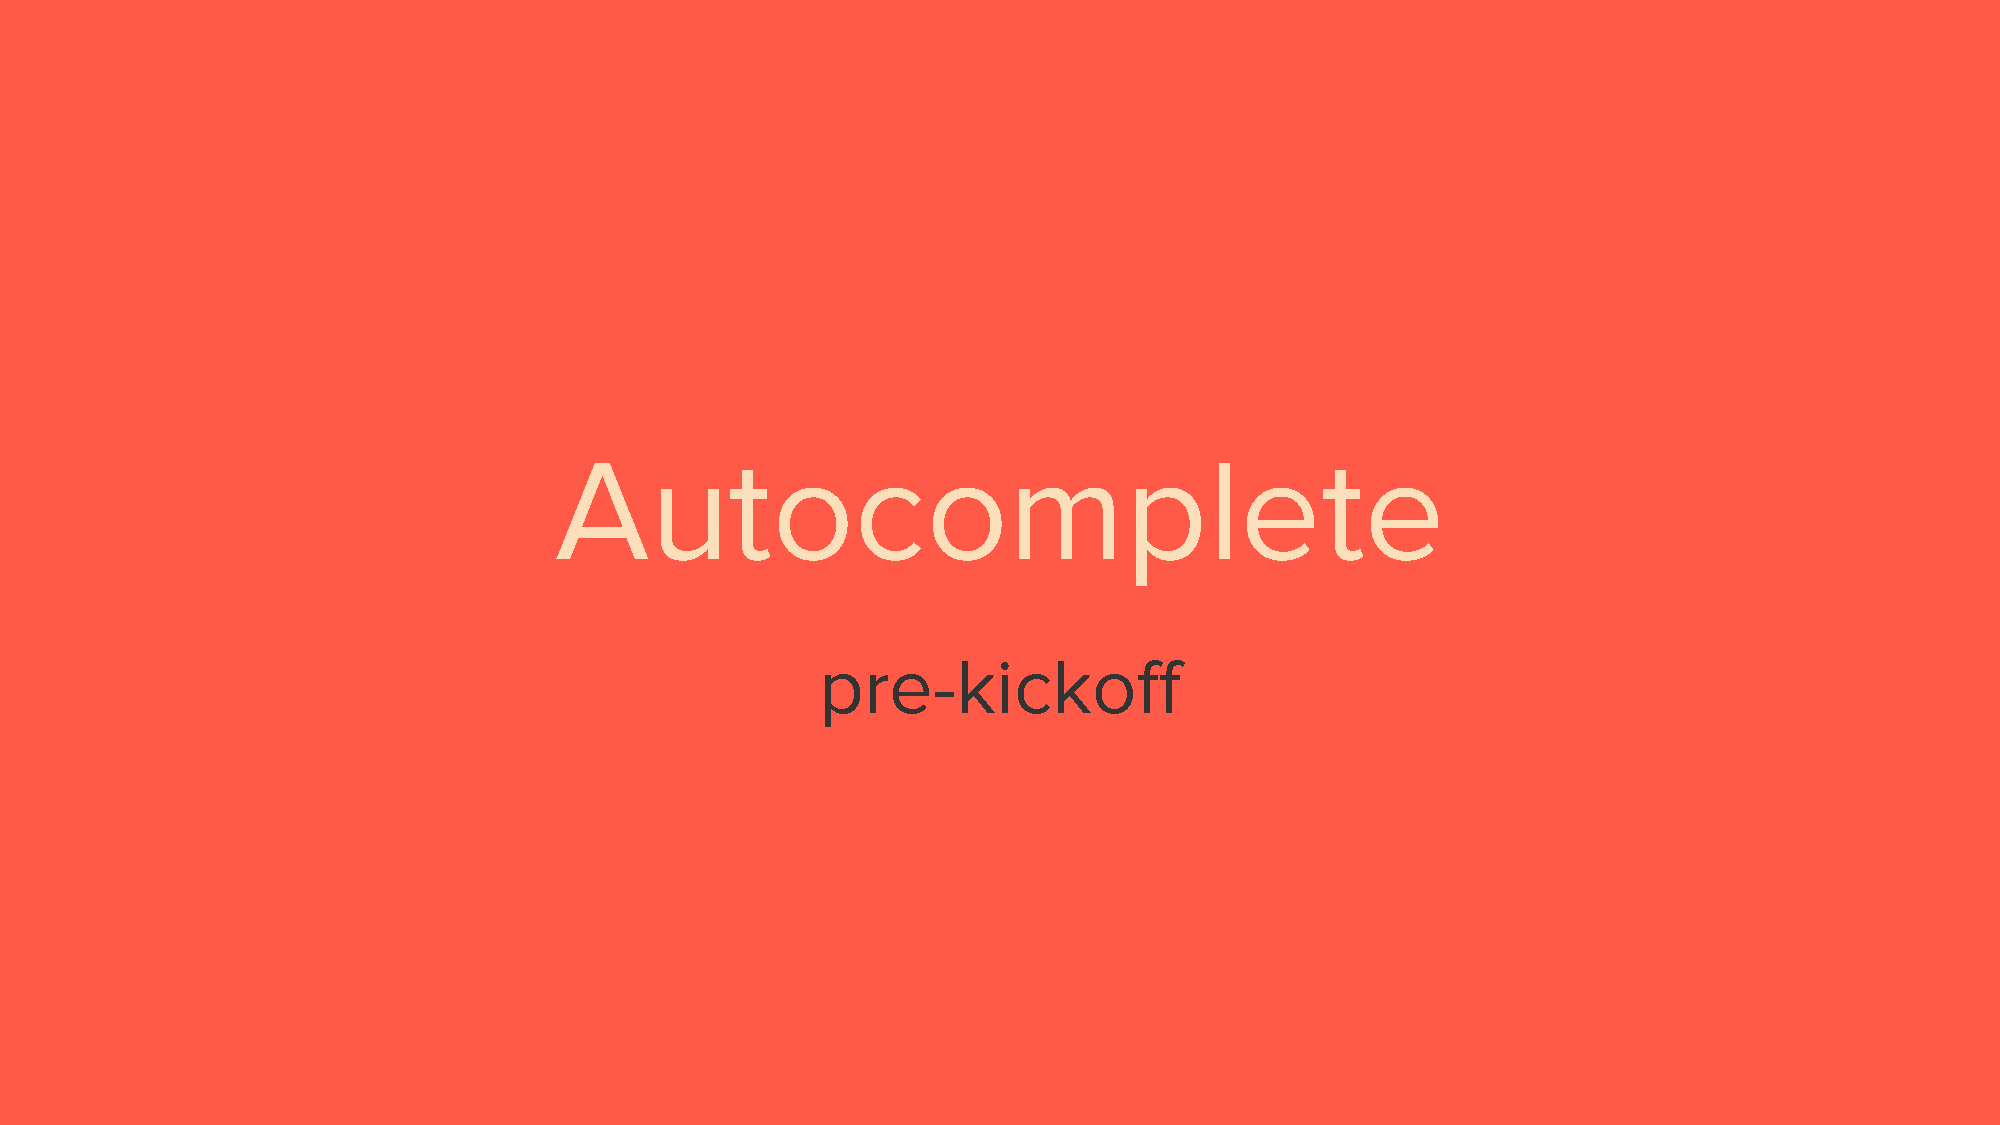 Autocomplete - a search utility [Pre-kickoff]_Page_01.png